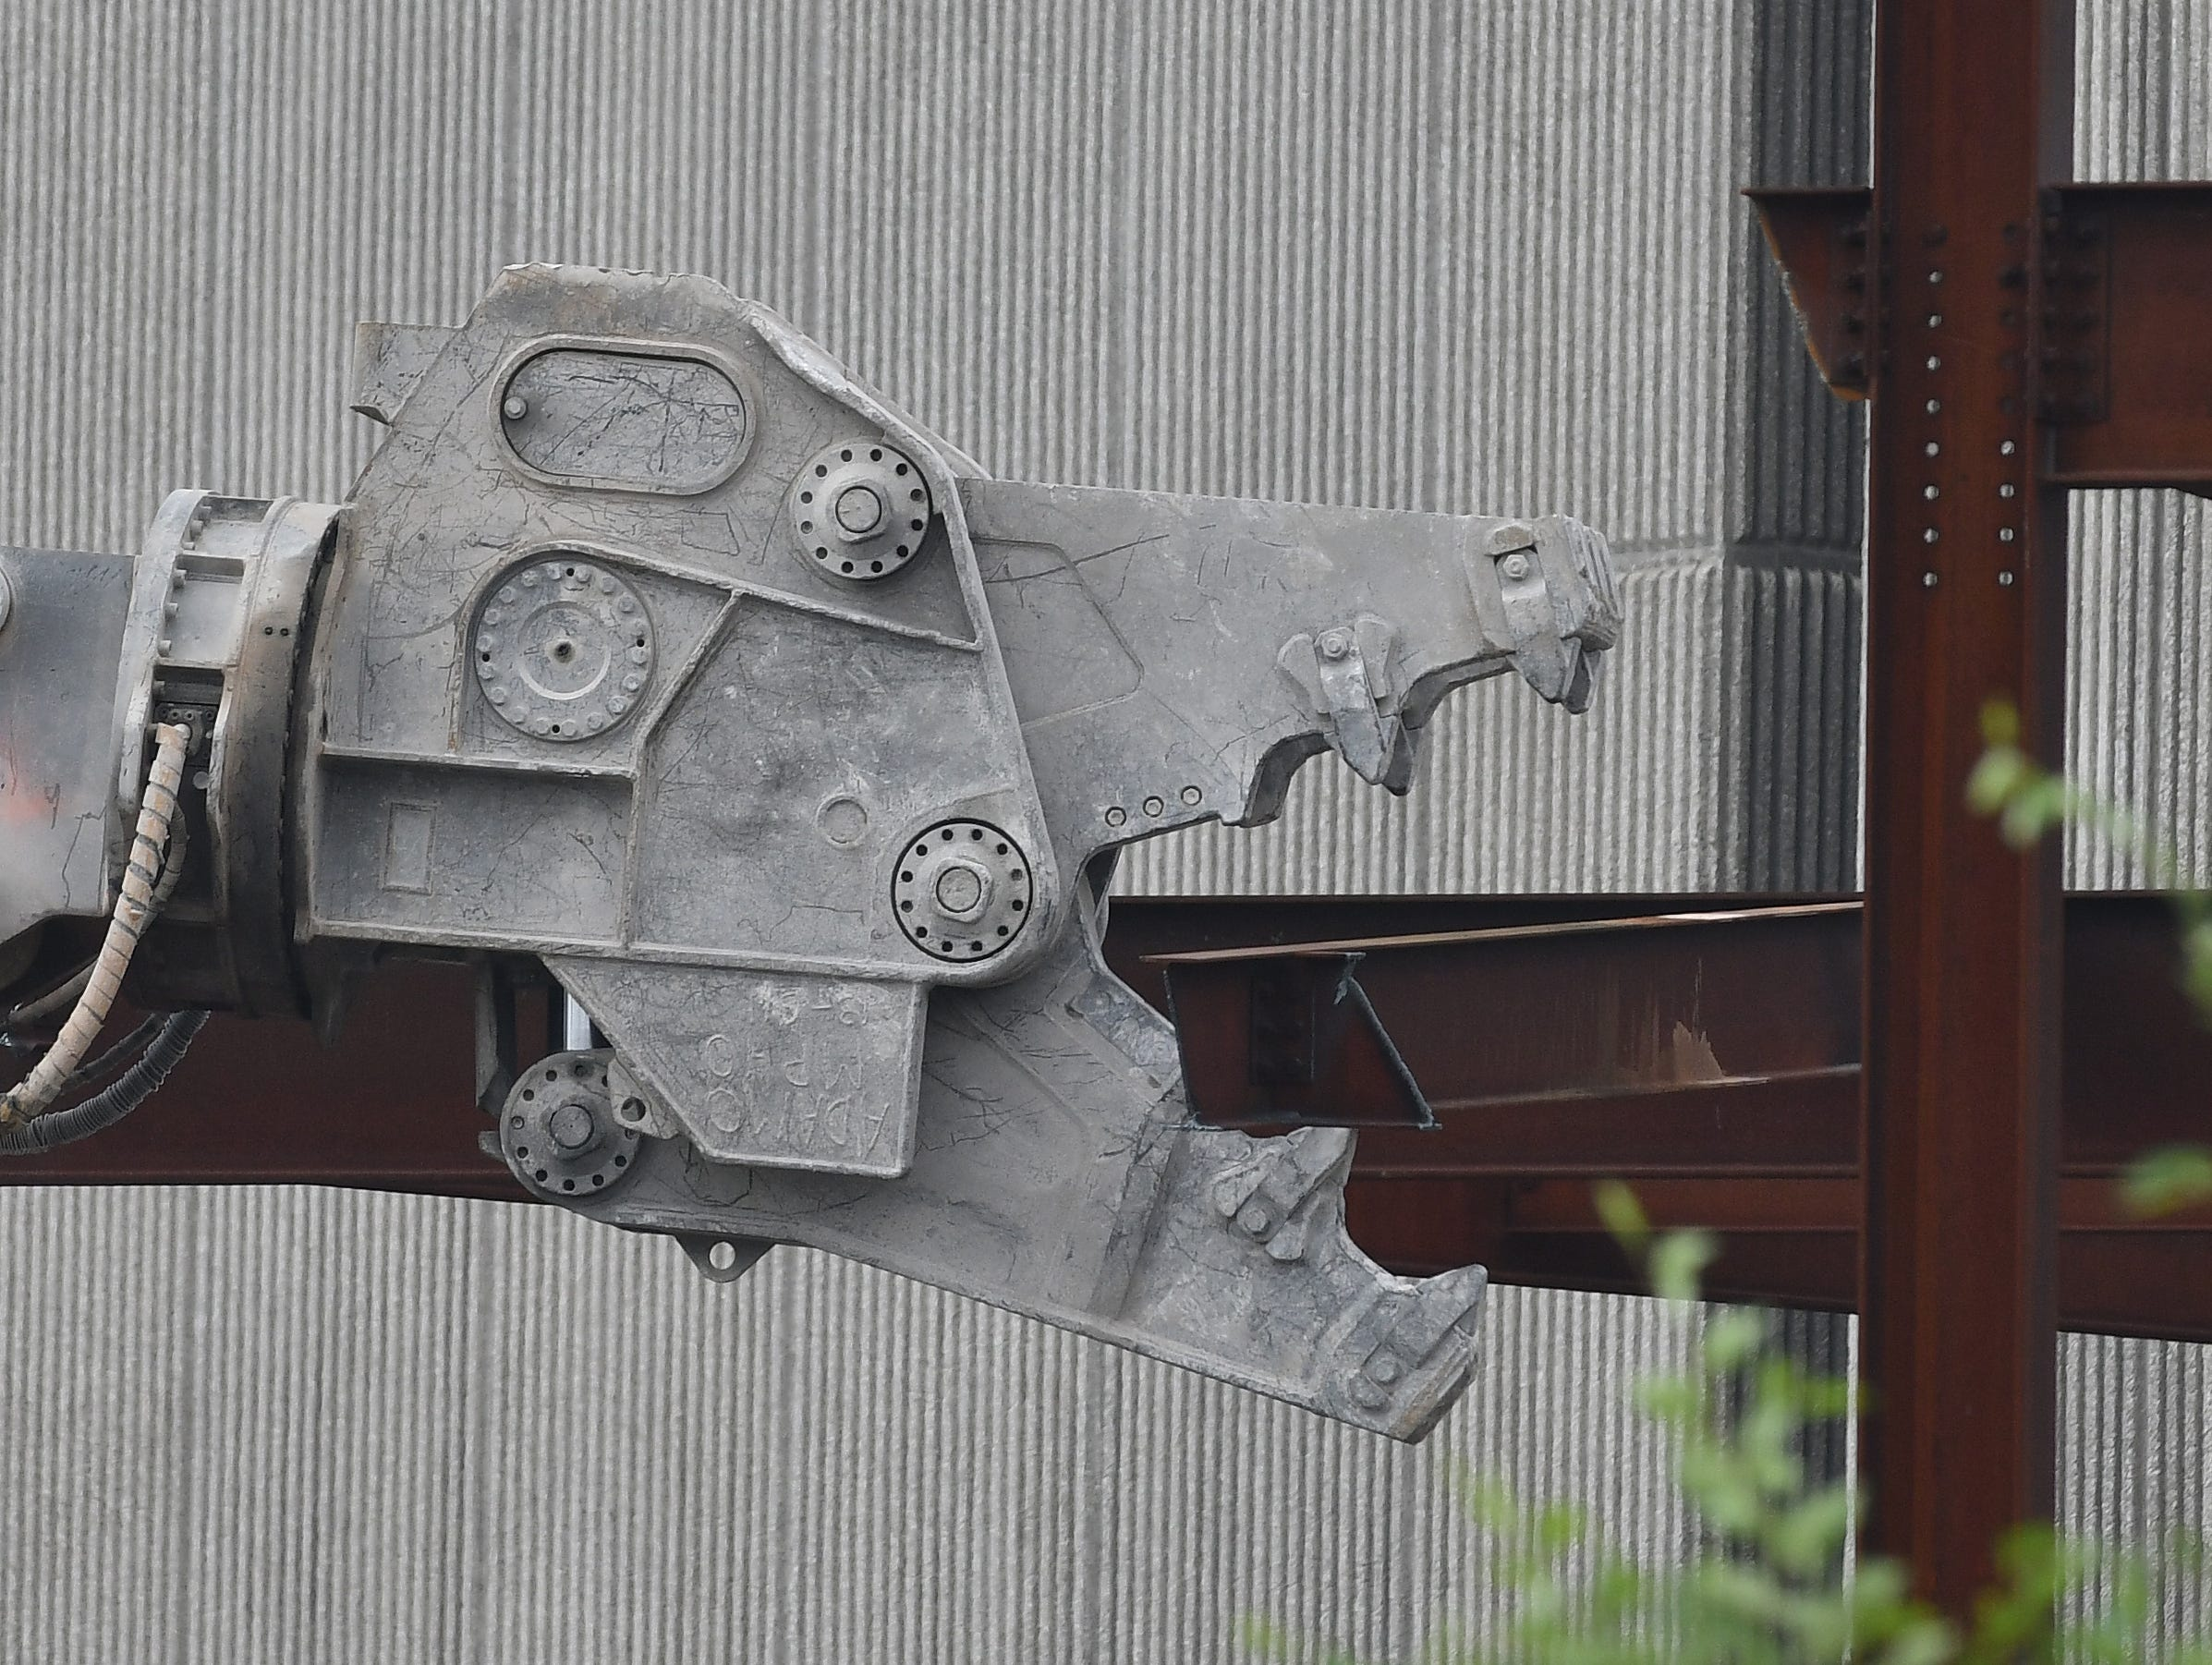 Industrial-strength jaws clamp onto a steel beam for the demolition of the unfinished Wayne County Jail site along Gratiot Avenue in Detroit on July 25, 2018.